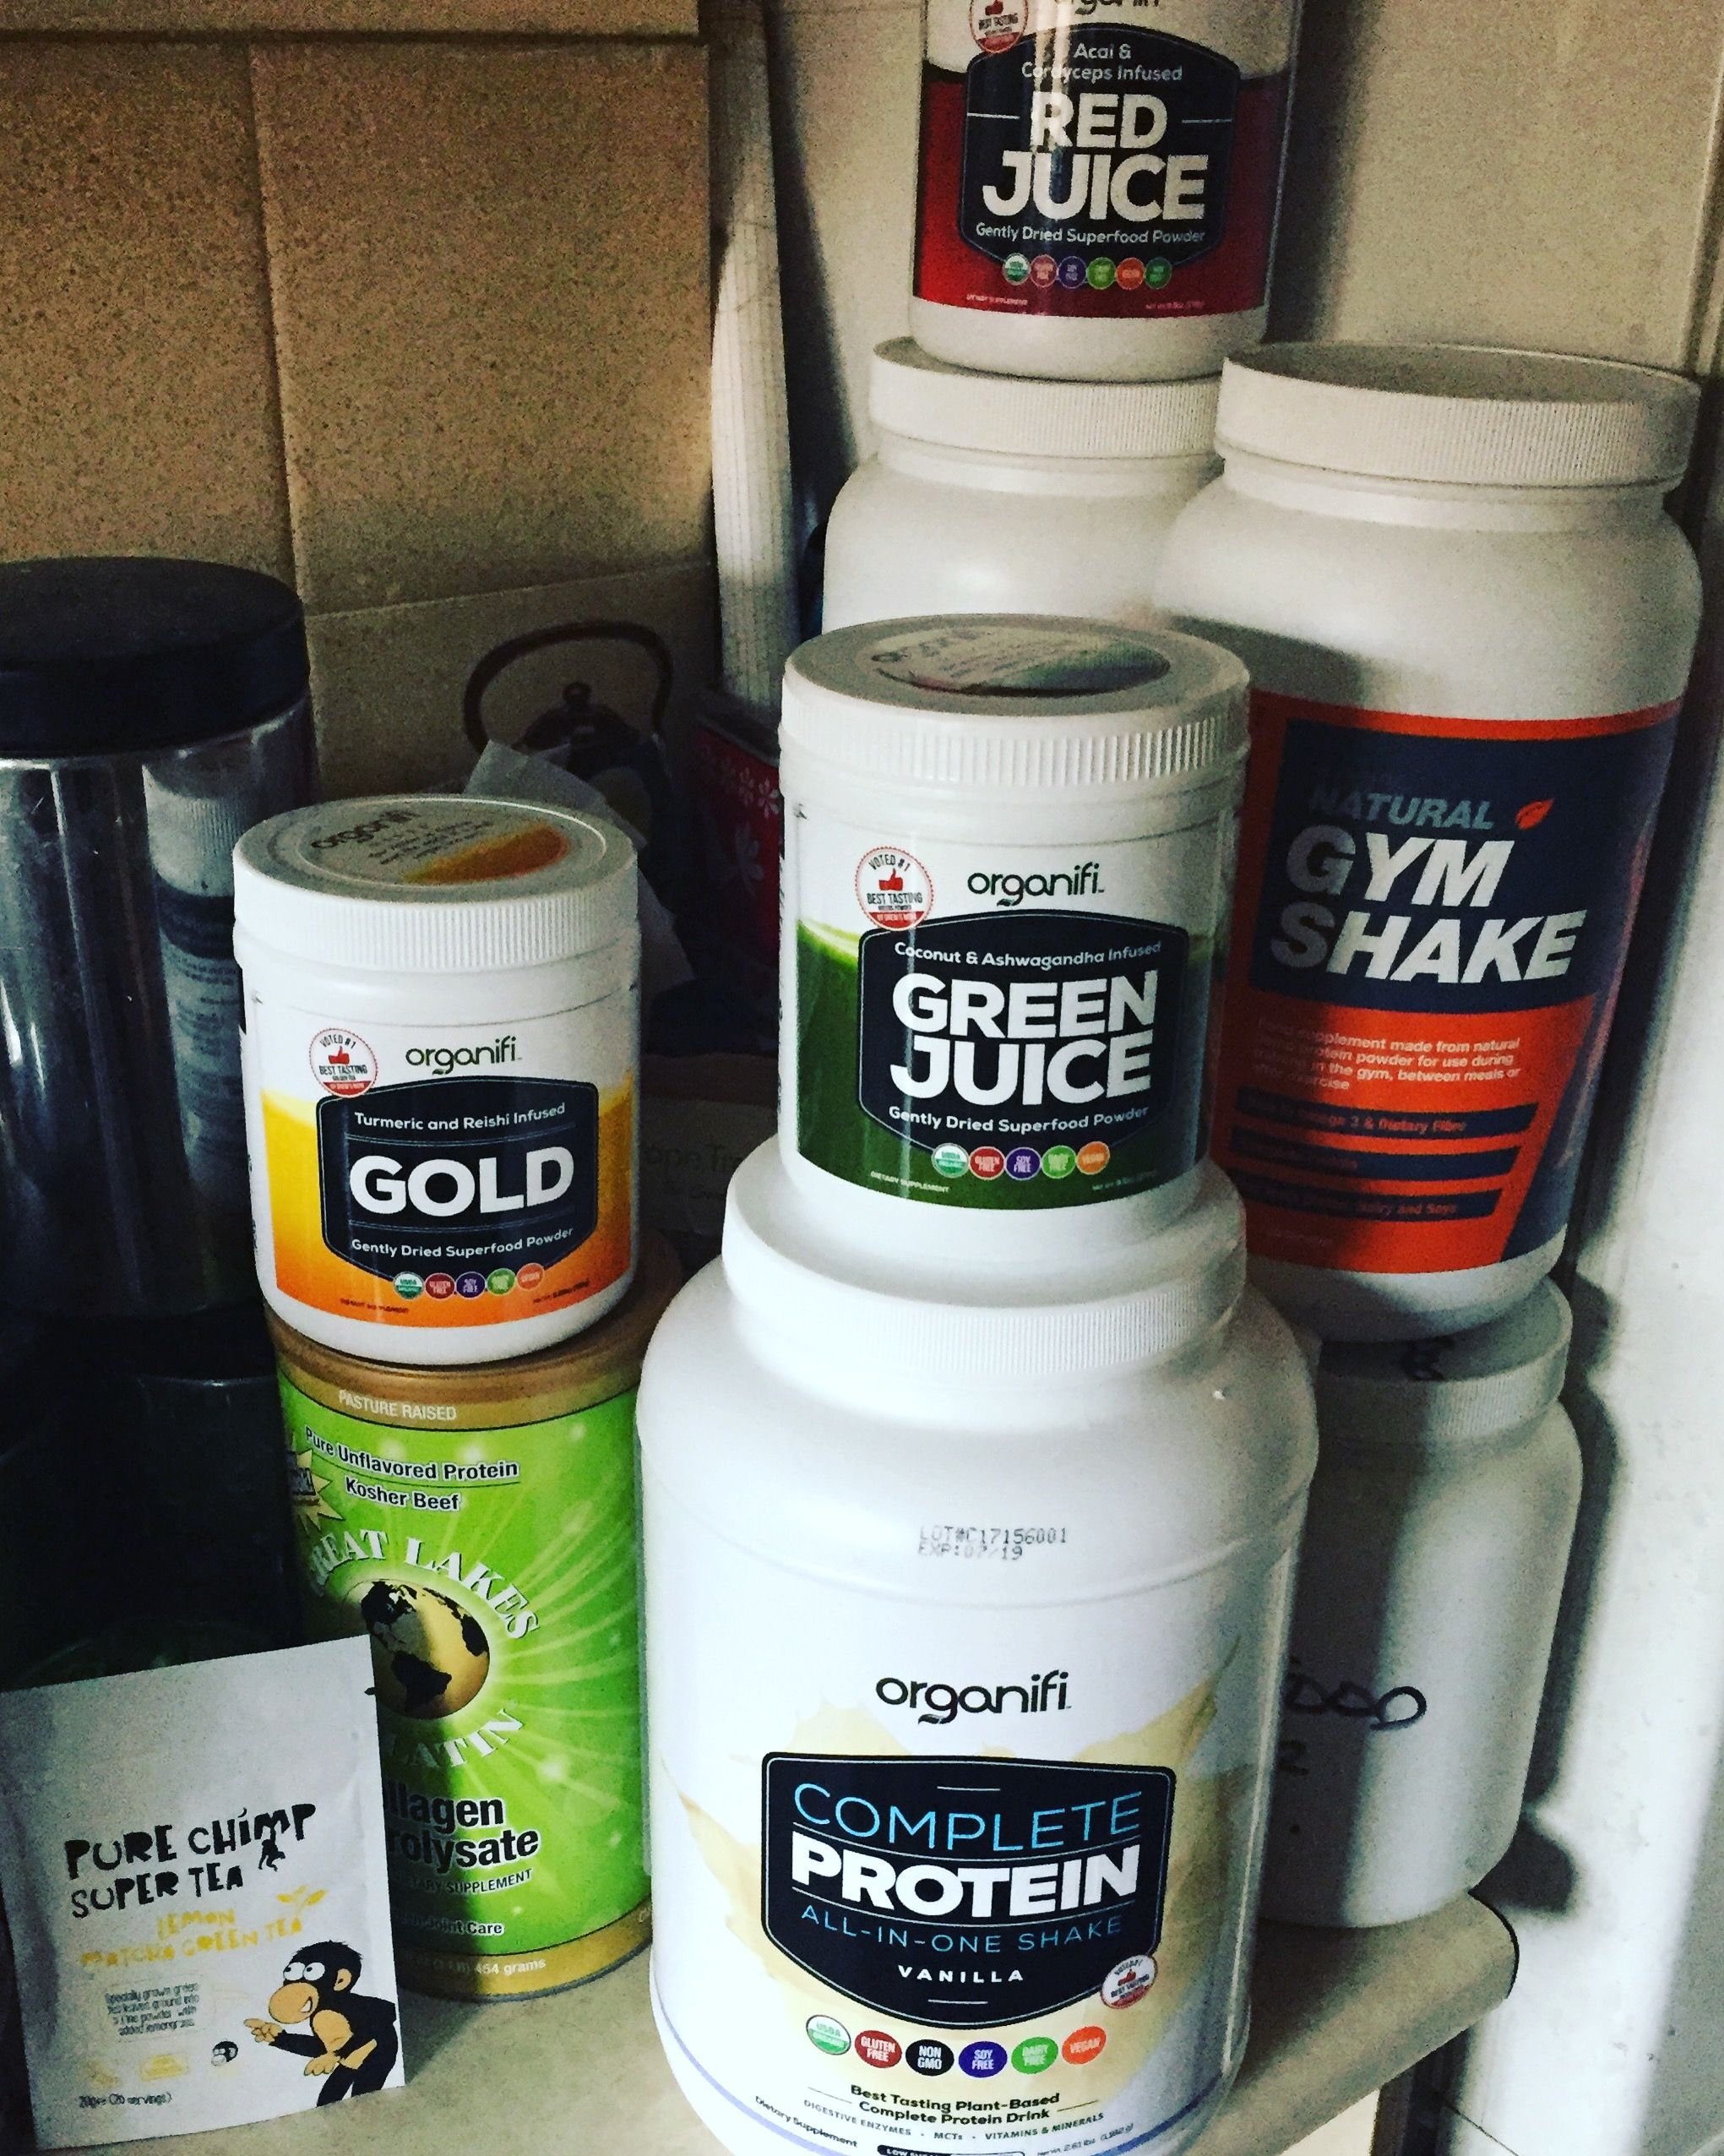 Organifi Gold Green Juice Red Juice Probiotics Complete Protein Vanilla To Save 15 At Checkout Jemma15 Organifi Complete Protein Collagen Protein Powder